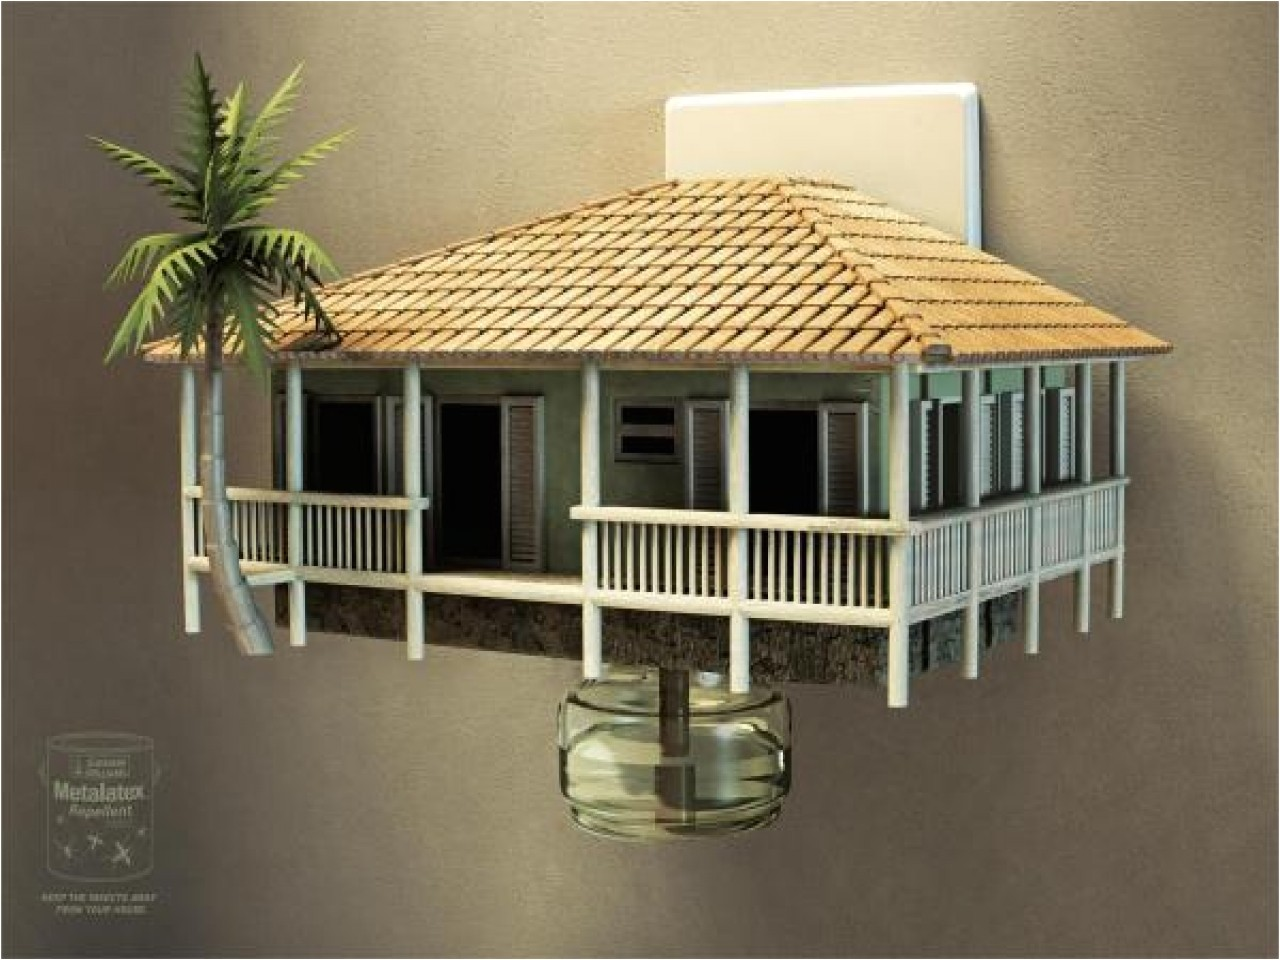 d8a36c09dc9d6a70 house on stilts small stilt house plans